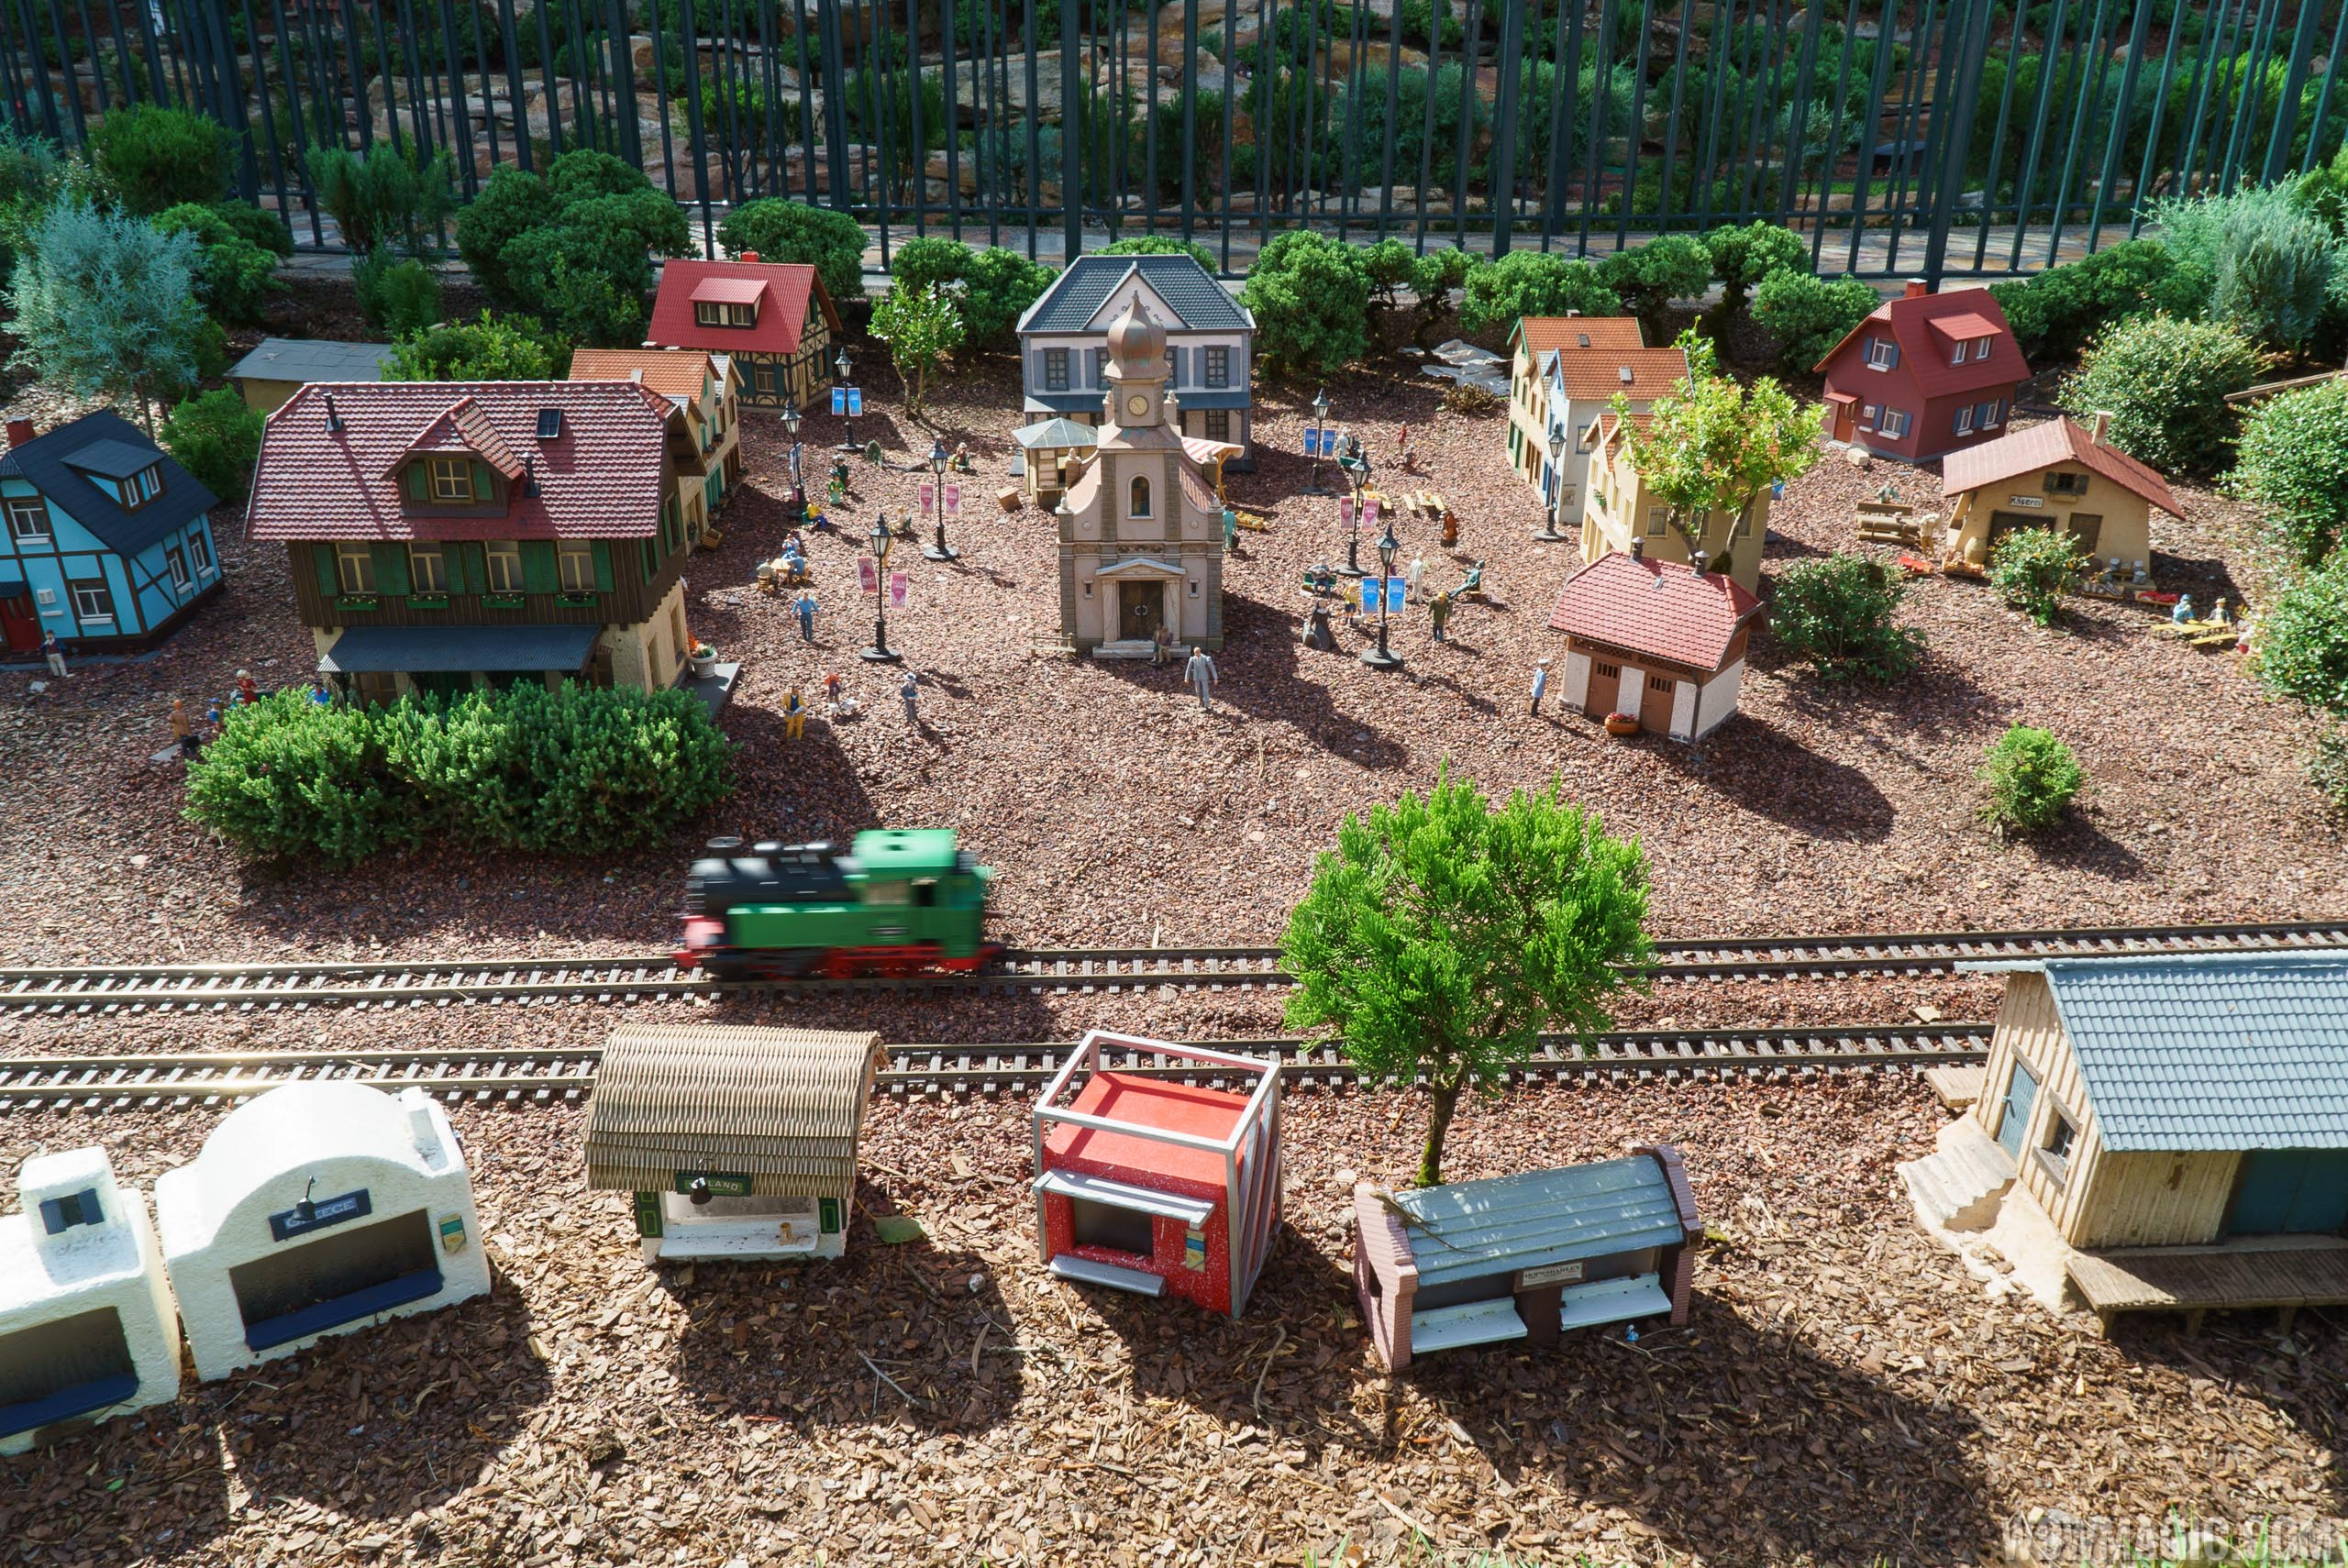 Germany Model Railroad reopening